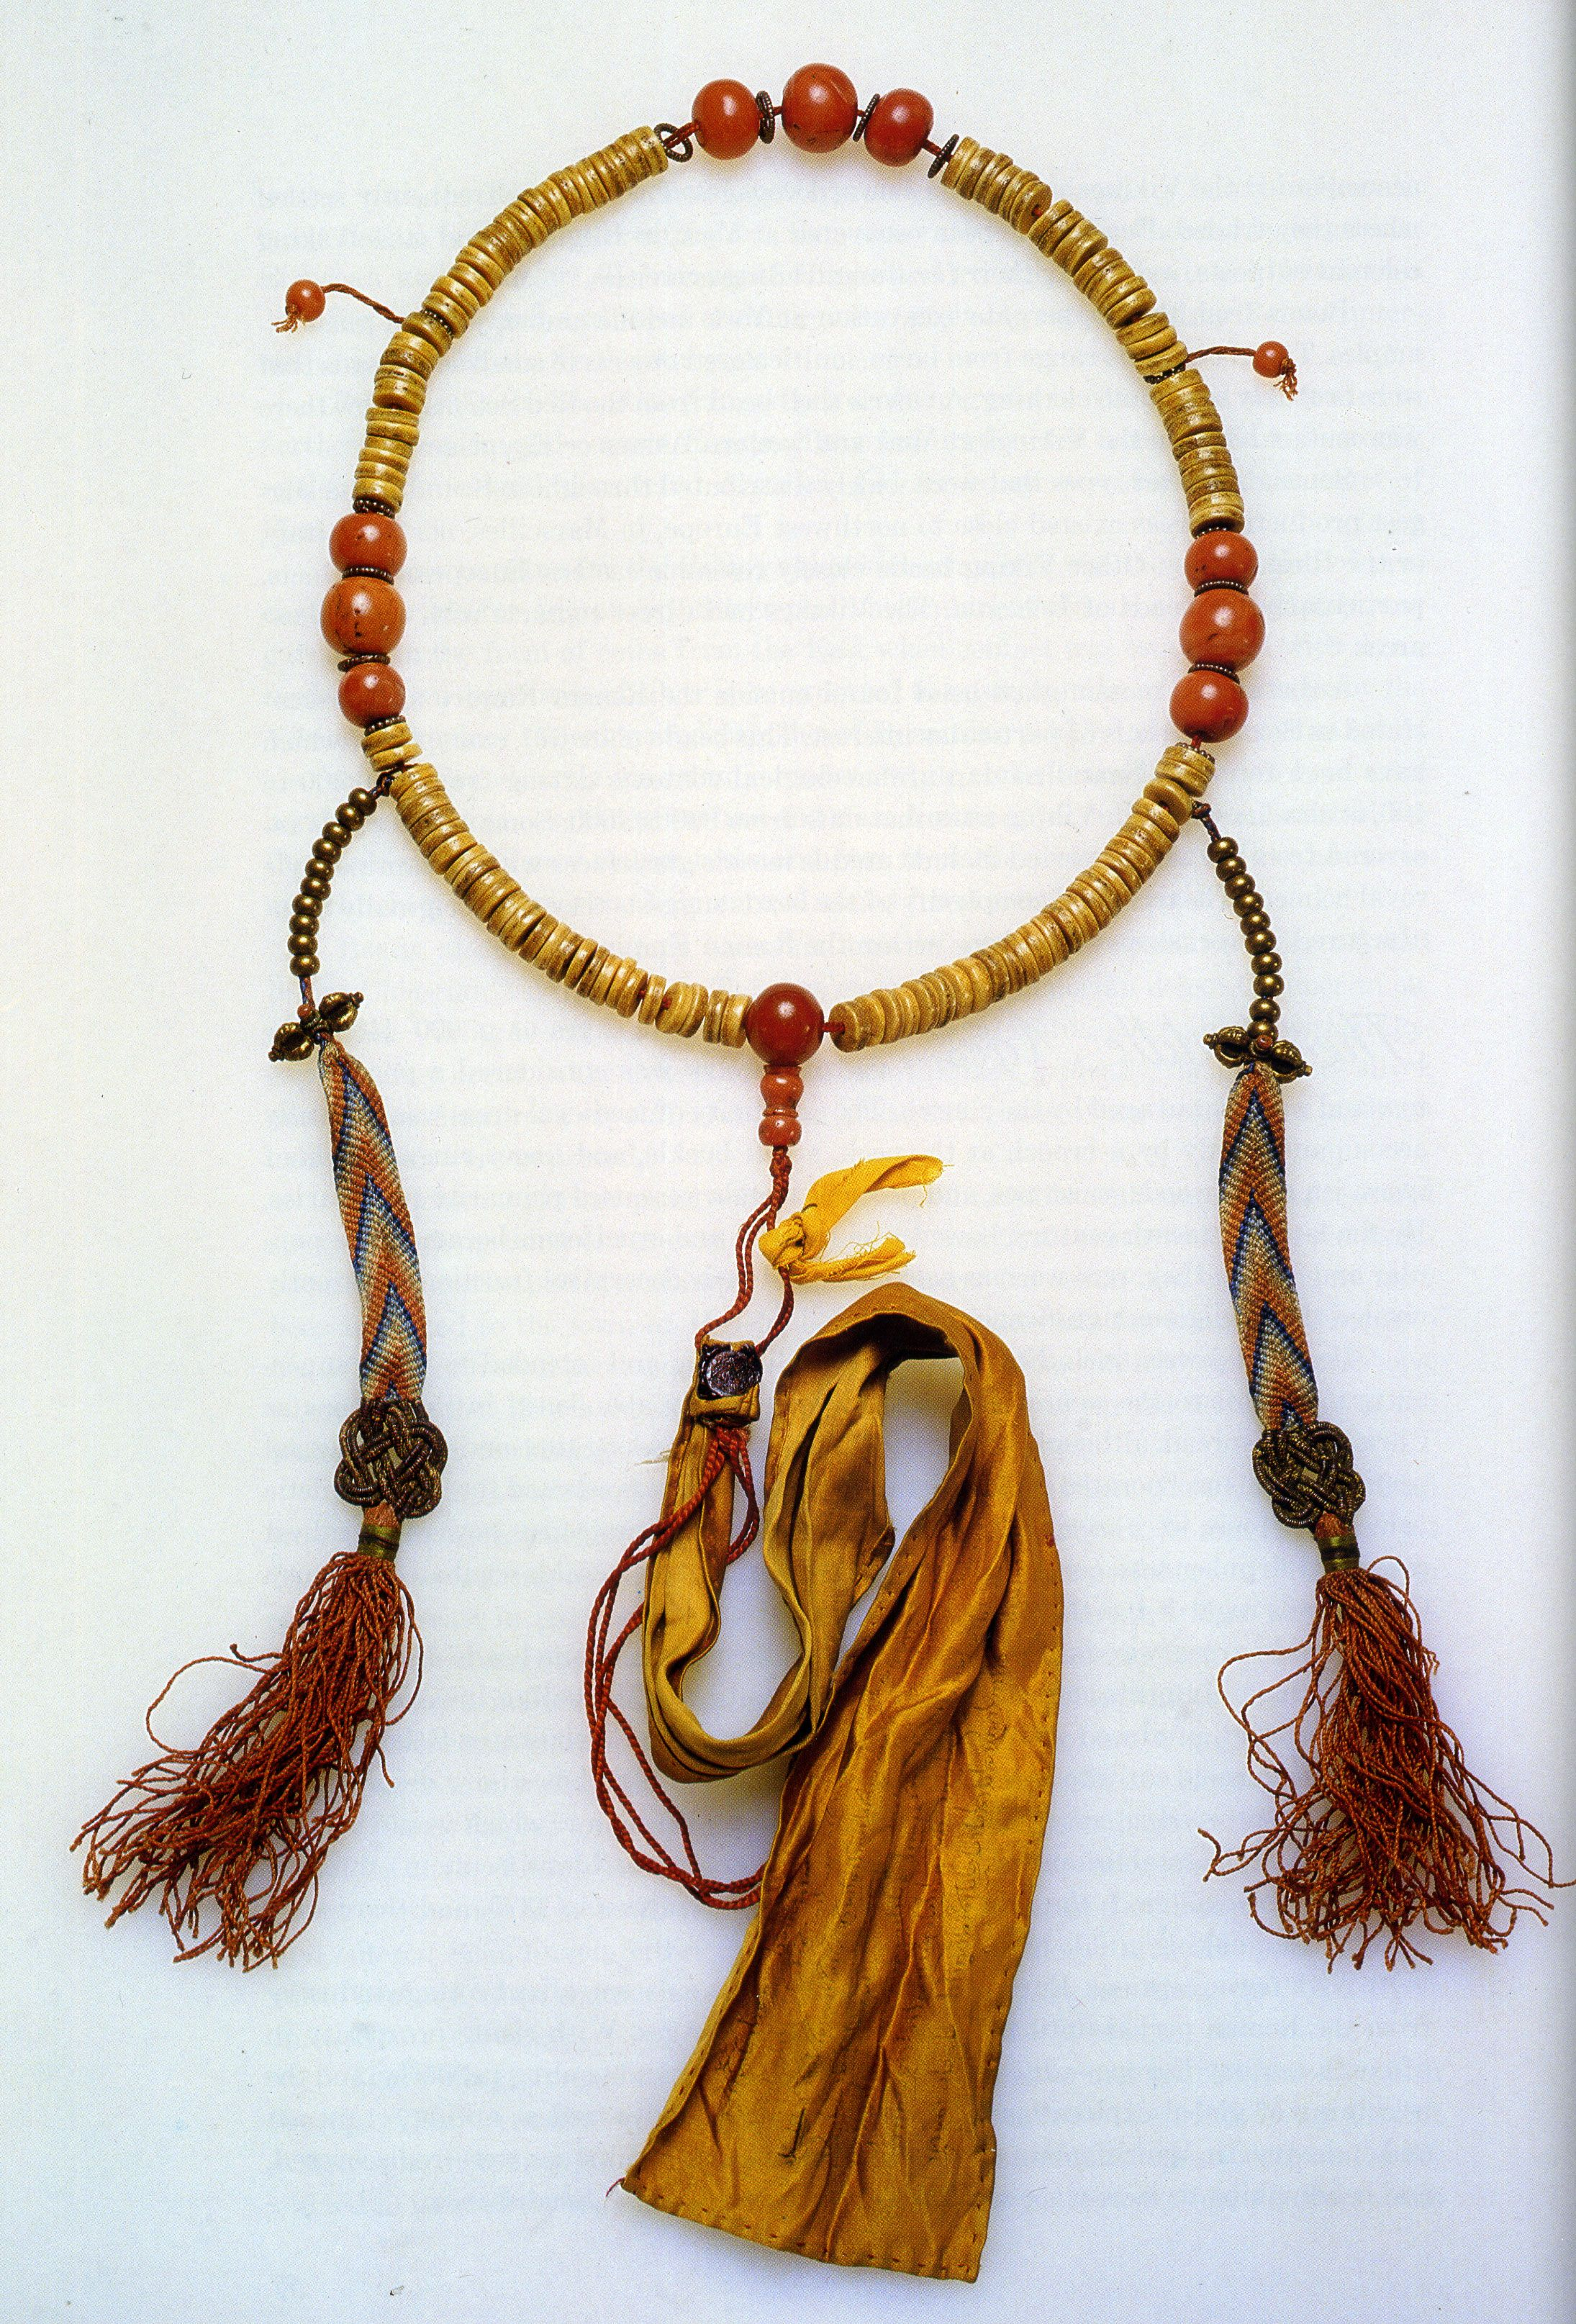 Very Old Tibetan Buddhist mala made from lama bones, coral spacer beads, silk & metal counters-for wrathful practices only. Tibet.